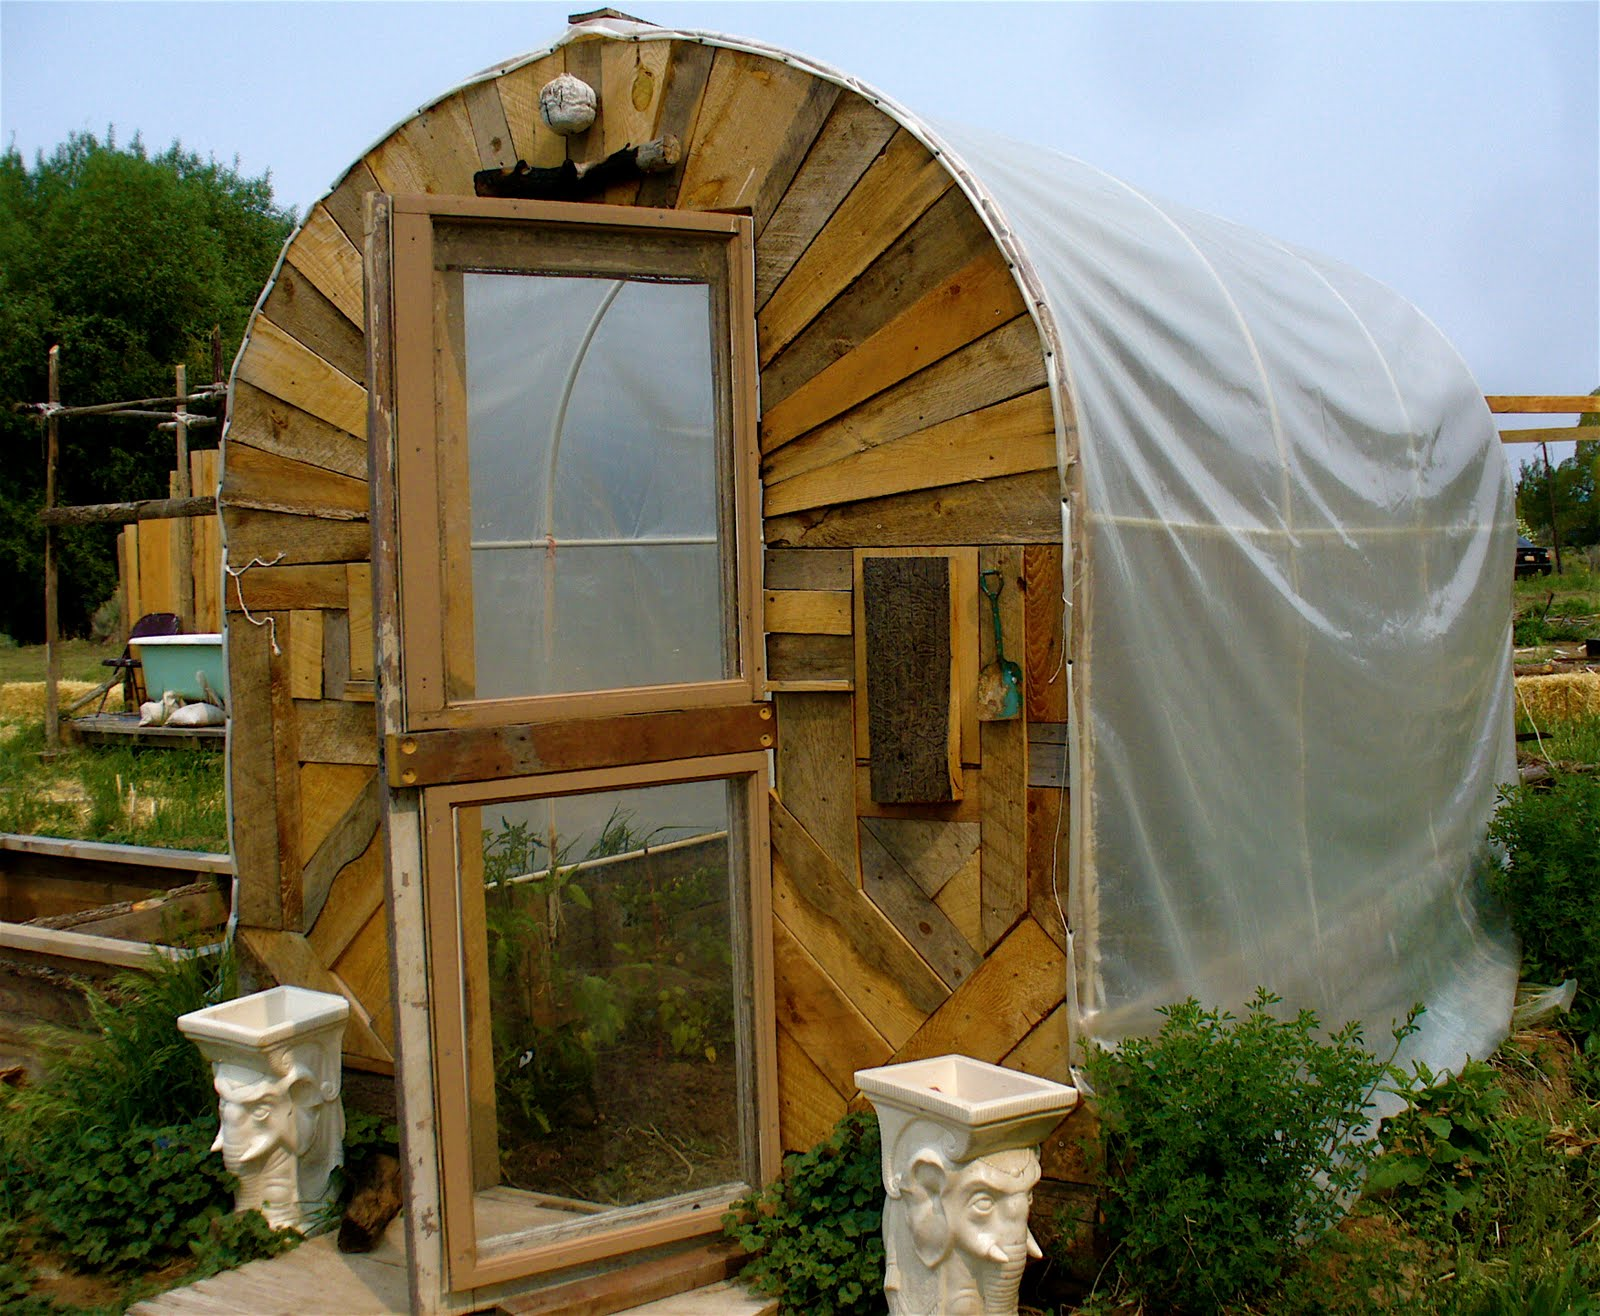 Alt build blog hoop houses and an outdoor shower in - How to make an outdoor shower ...